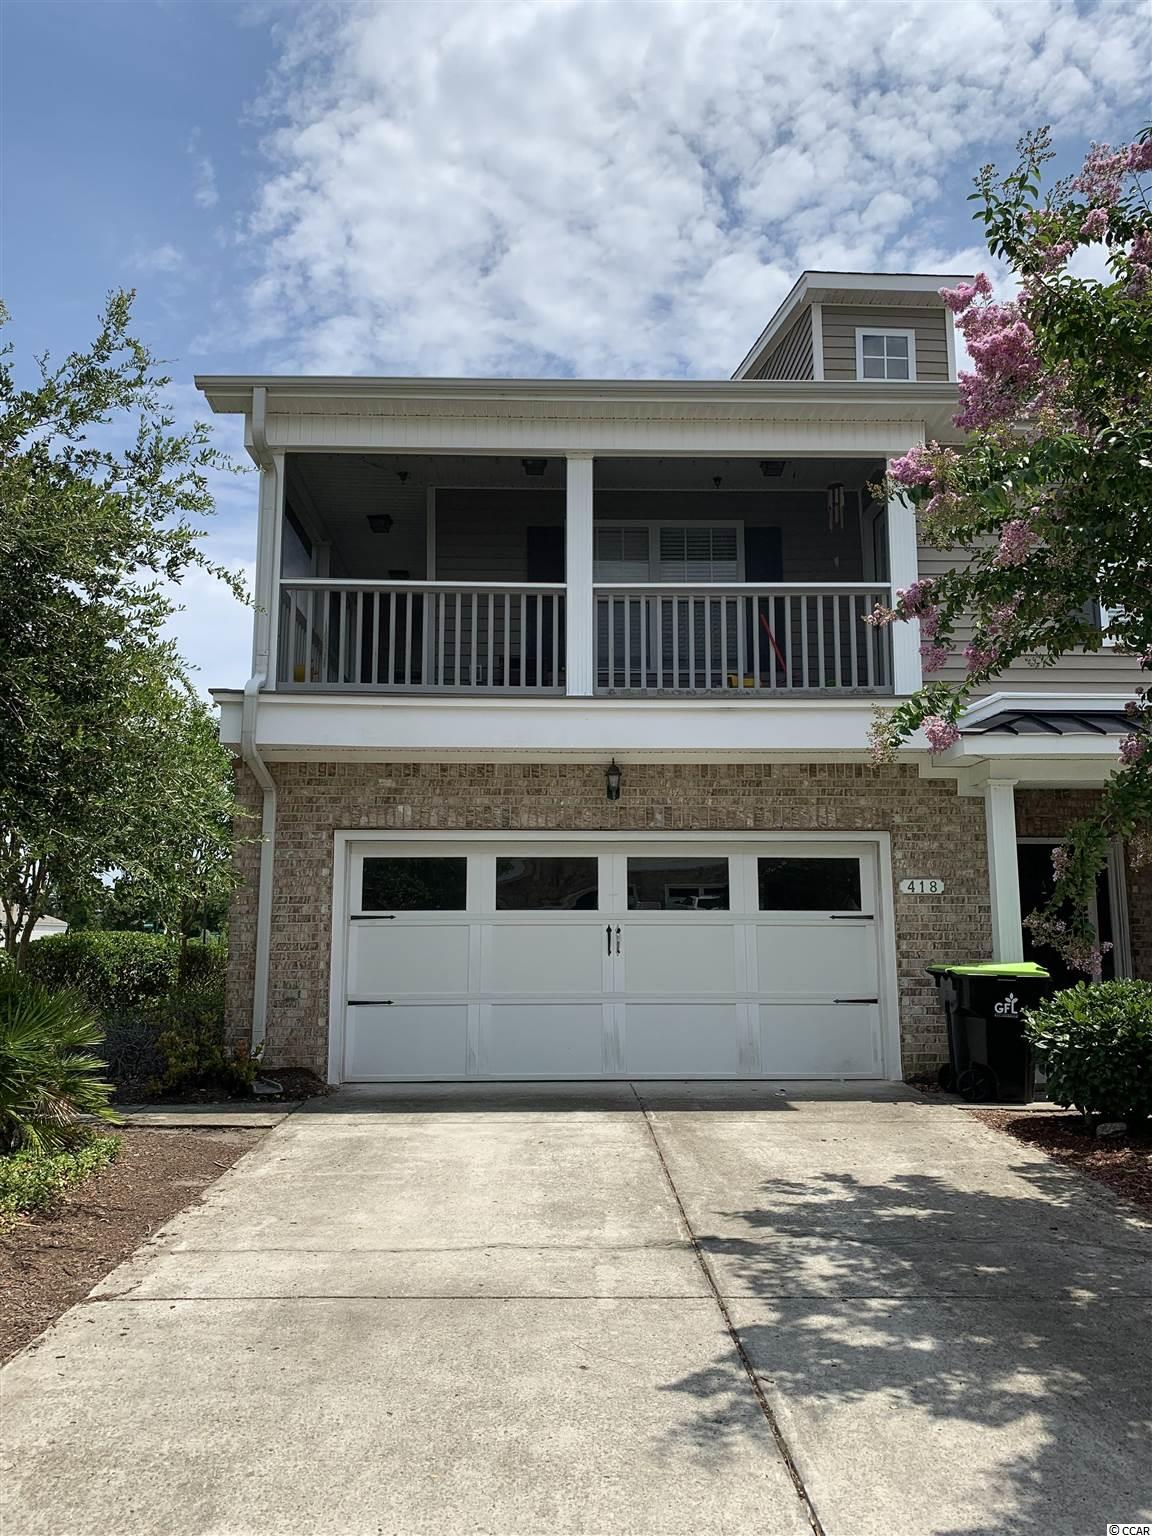 Don't miss your opportunity to grab this townhouse, it will not be available very long.  This 3 bedroom, 2.5 bath home, 2 car garage offers high ceilings spacious downstairs living area that also has a formal dining room. This home is conveniently located near Highway 31 and Highway 501 that can quickly get you to the all locations North and South that The Grand Strand has to offer.  Hot water heater replaced July 20201.